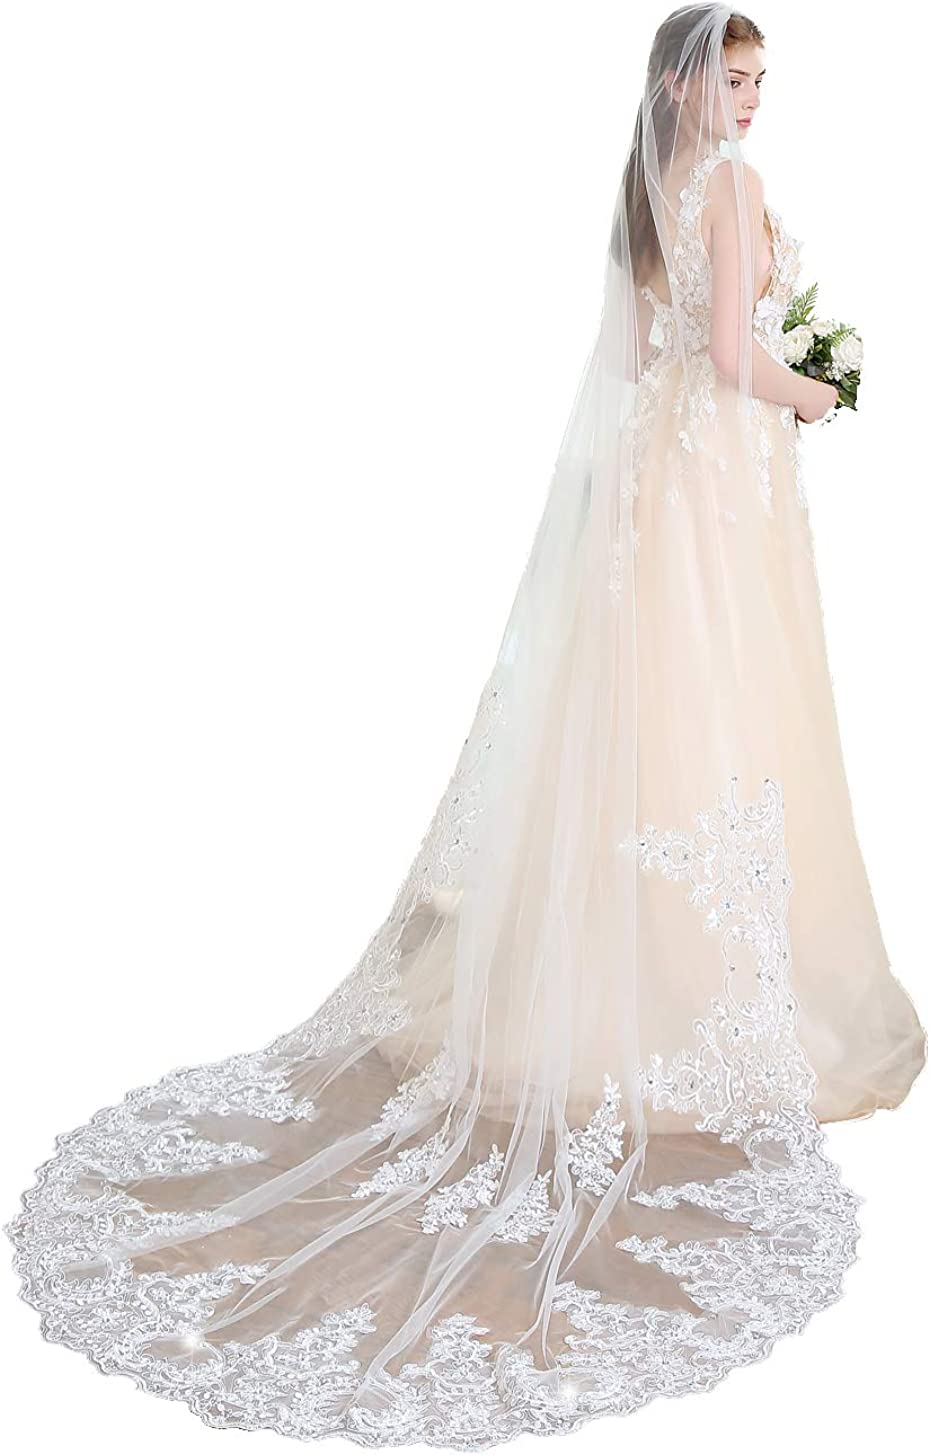 Crystal Wedding Veil Max 67% OFF 1 Tier Cathedral Special Campaign Long Length w Bridal Veils